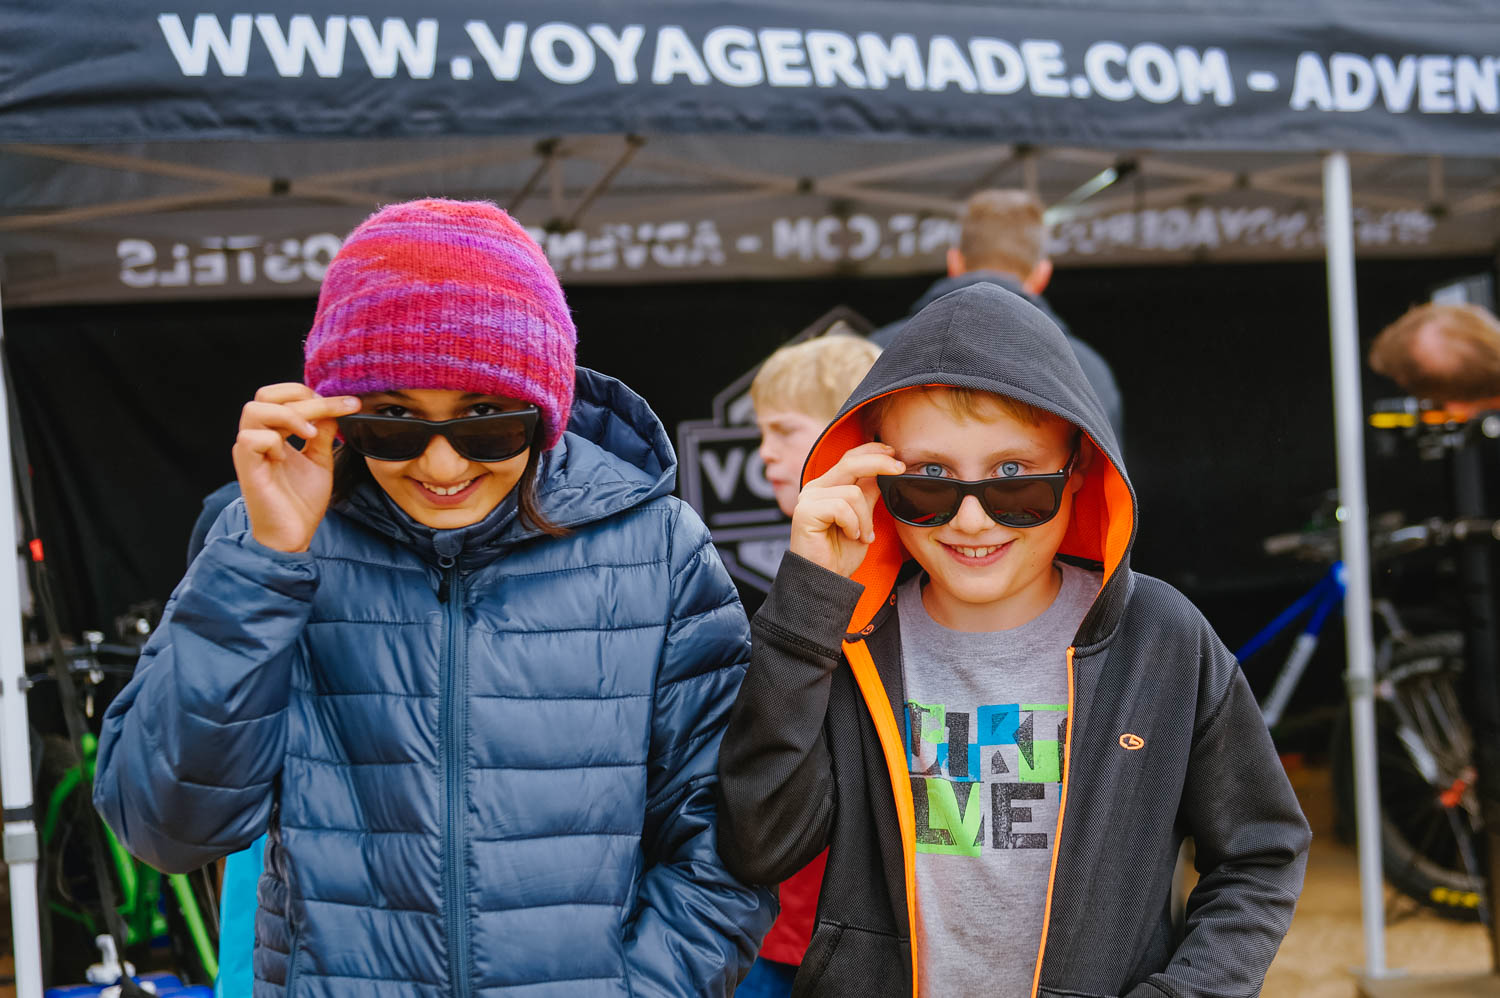 """Kids hiked up on samples of energy bars and hydration drinks,enjoying the free race swag they got """"in town""""."""